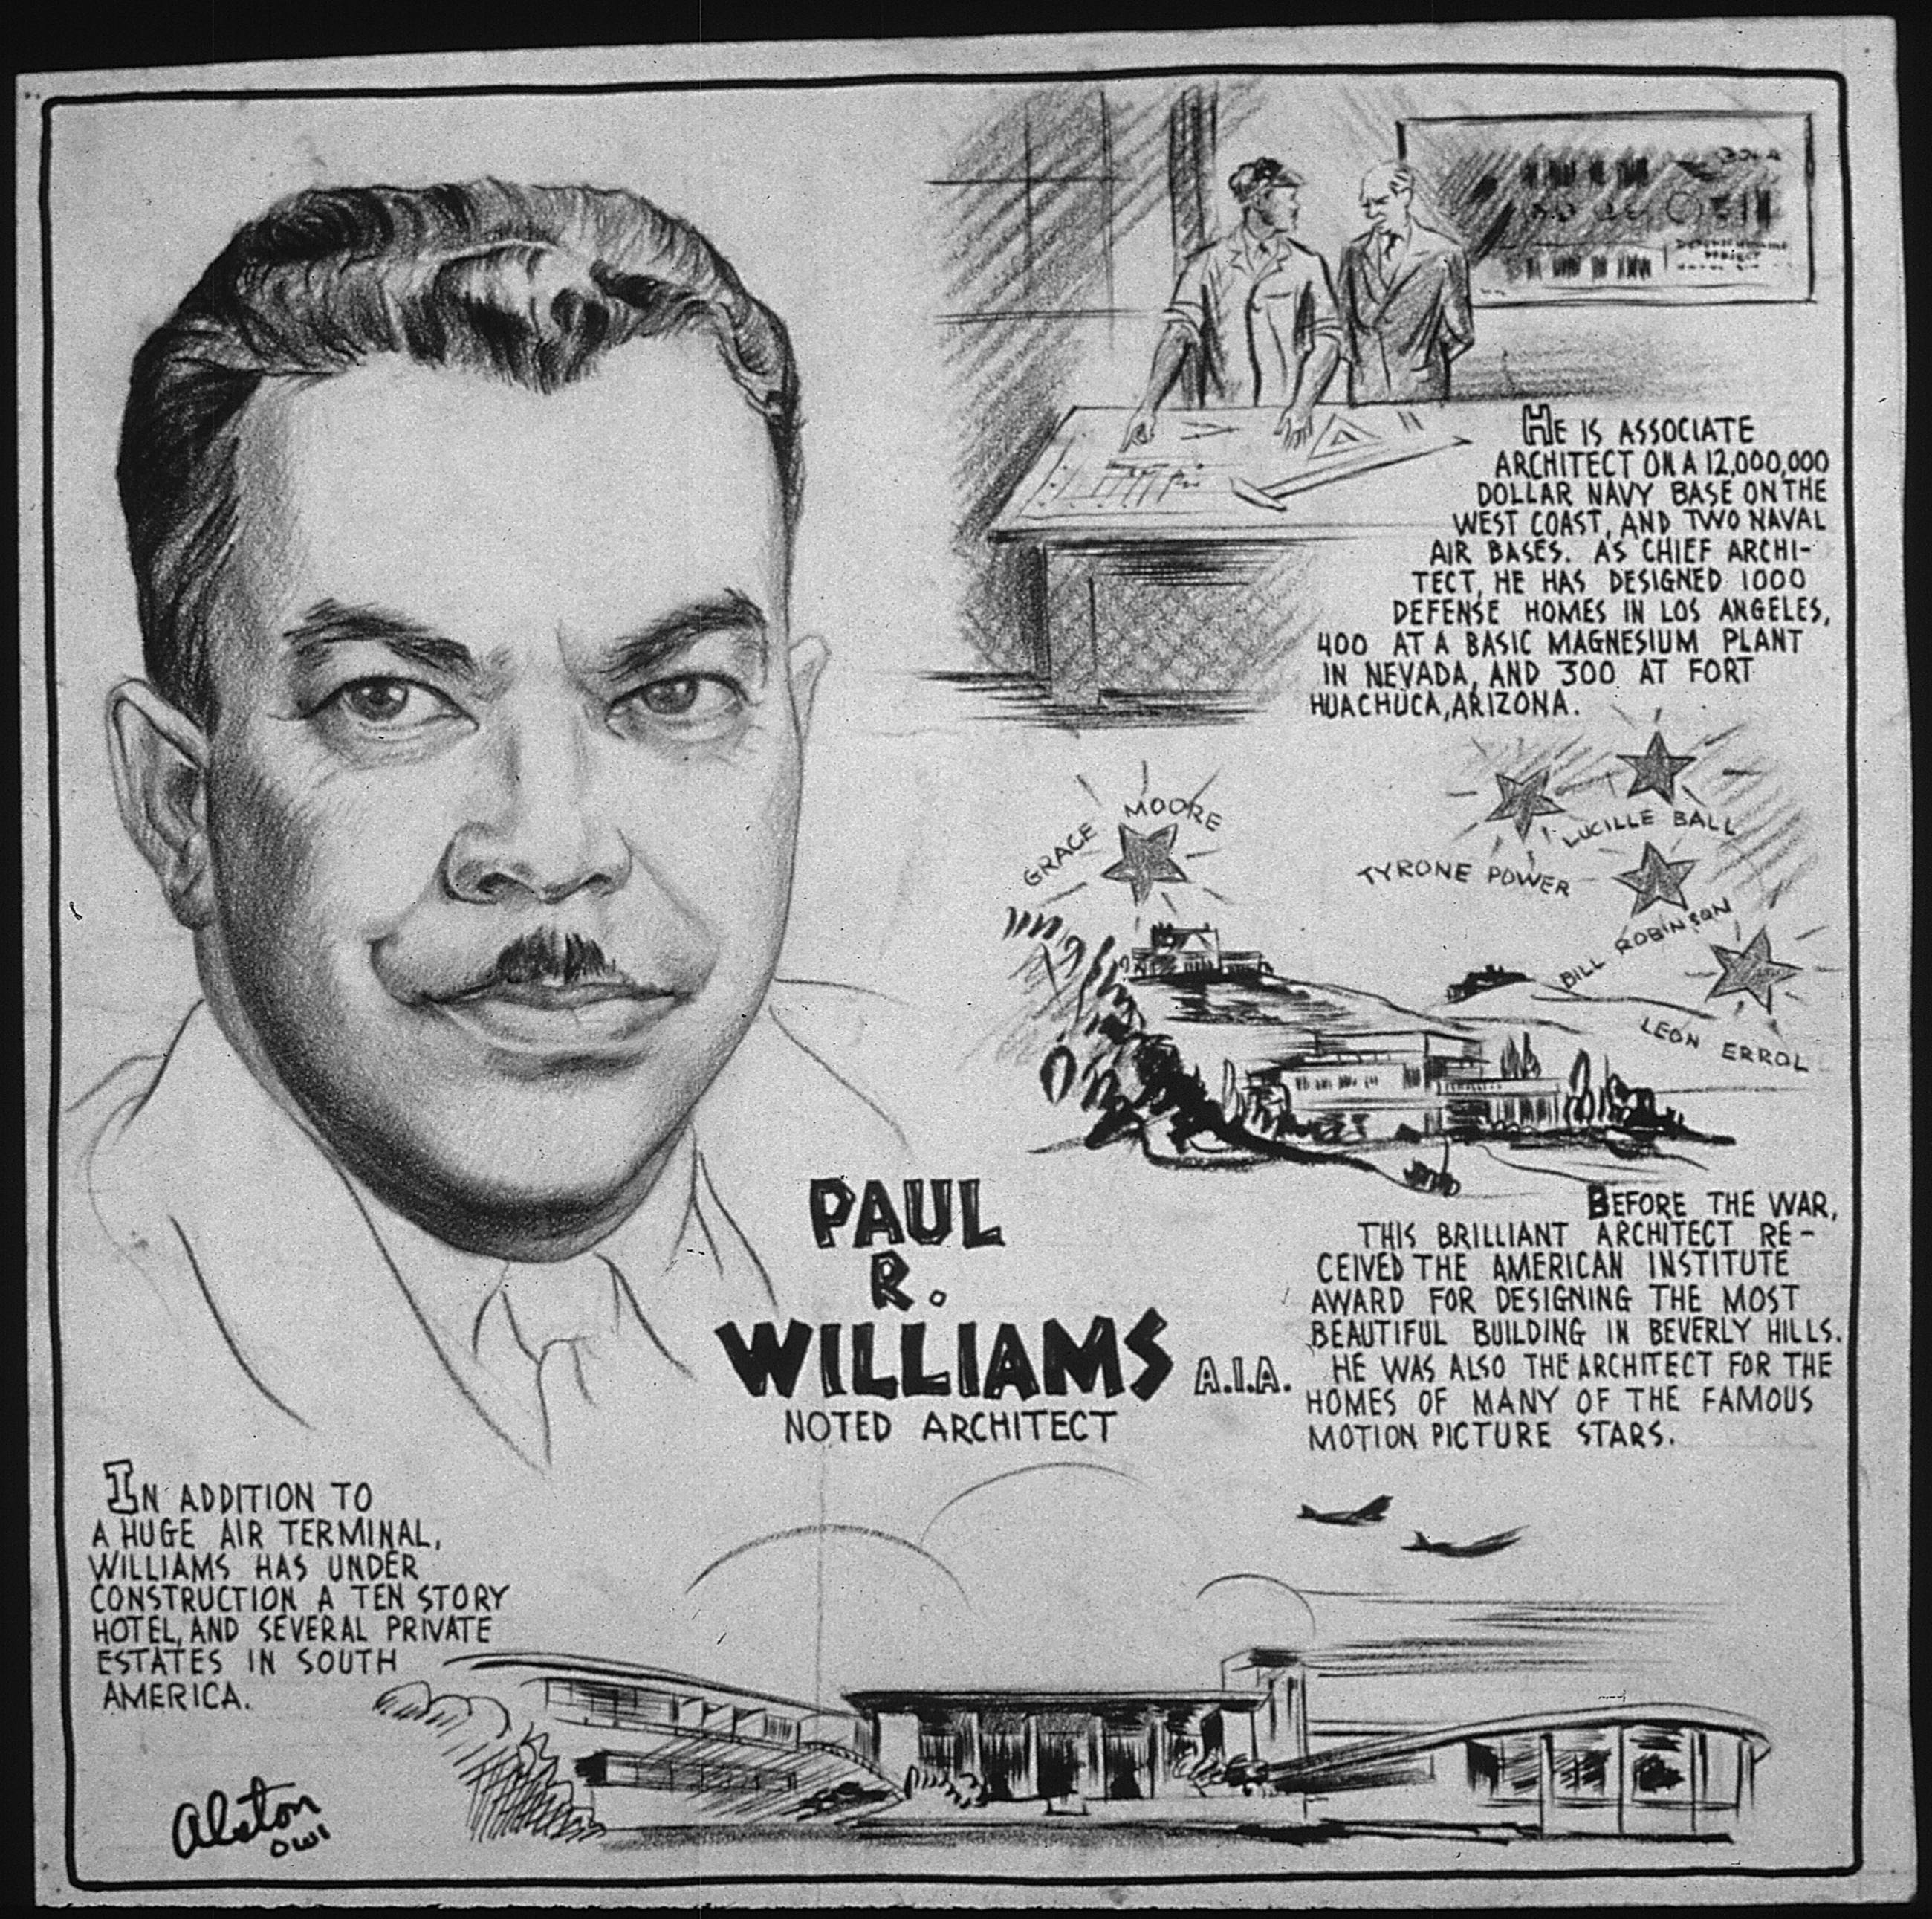 """""""PAUL R. WILLIAMS, A.I.A. - NOTED ARCHITECT"""" illustration"""